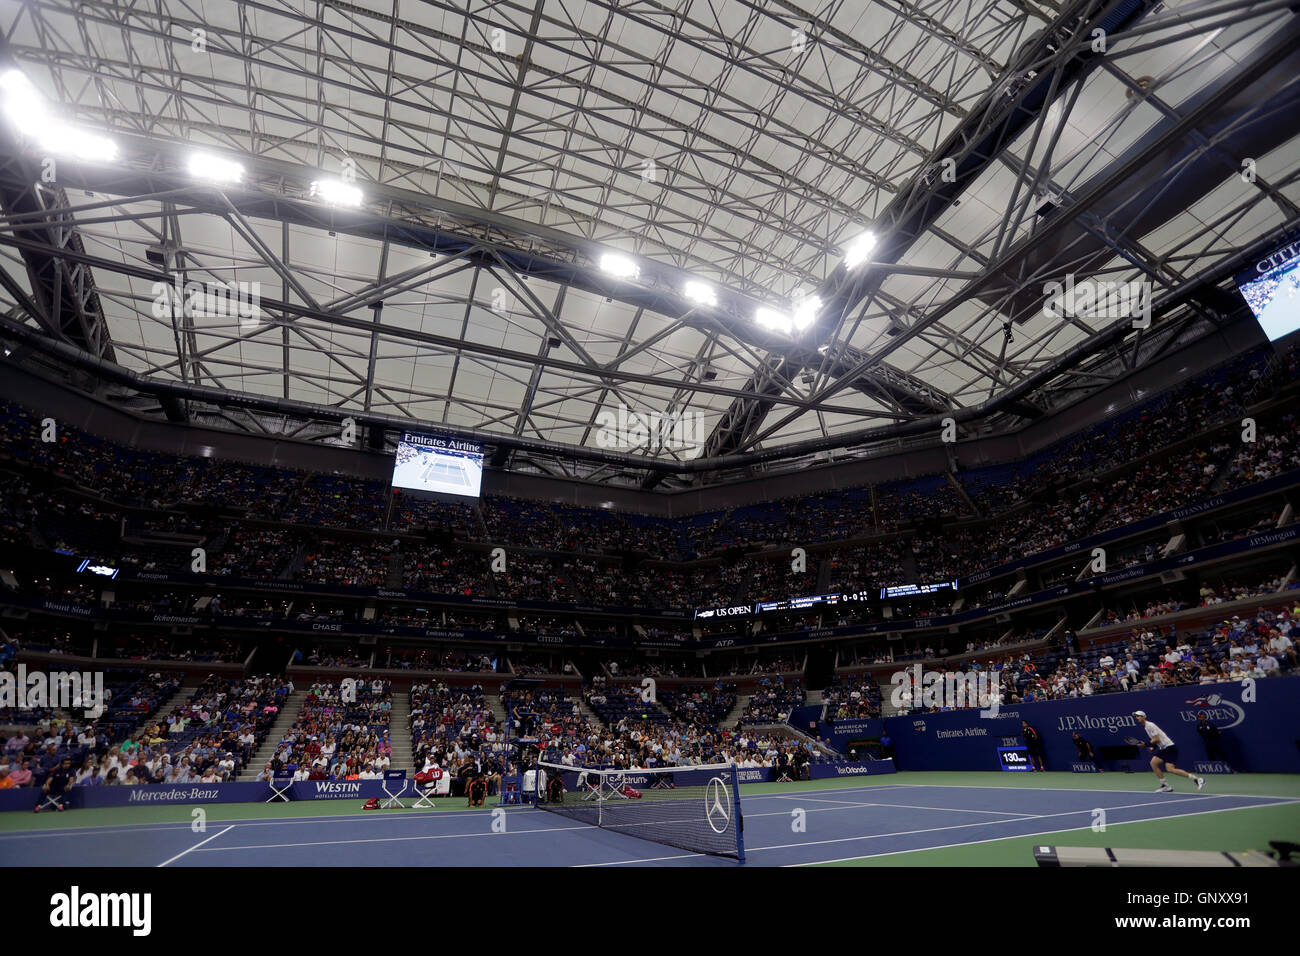 New York, USA. 1st Sep, 2016. Andy Murray of Great Britain plays under the closed roof at Arthur Ashe Stadium during - Stock Image